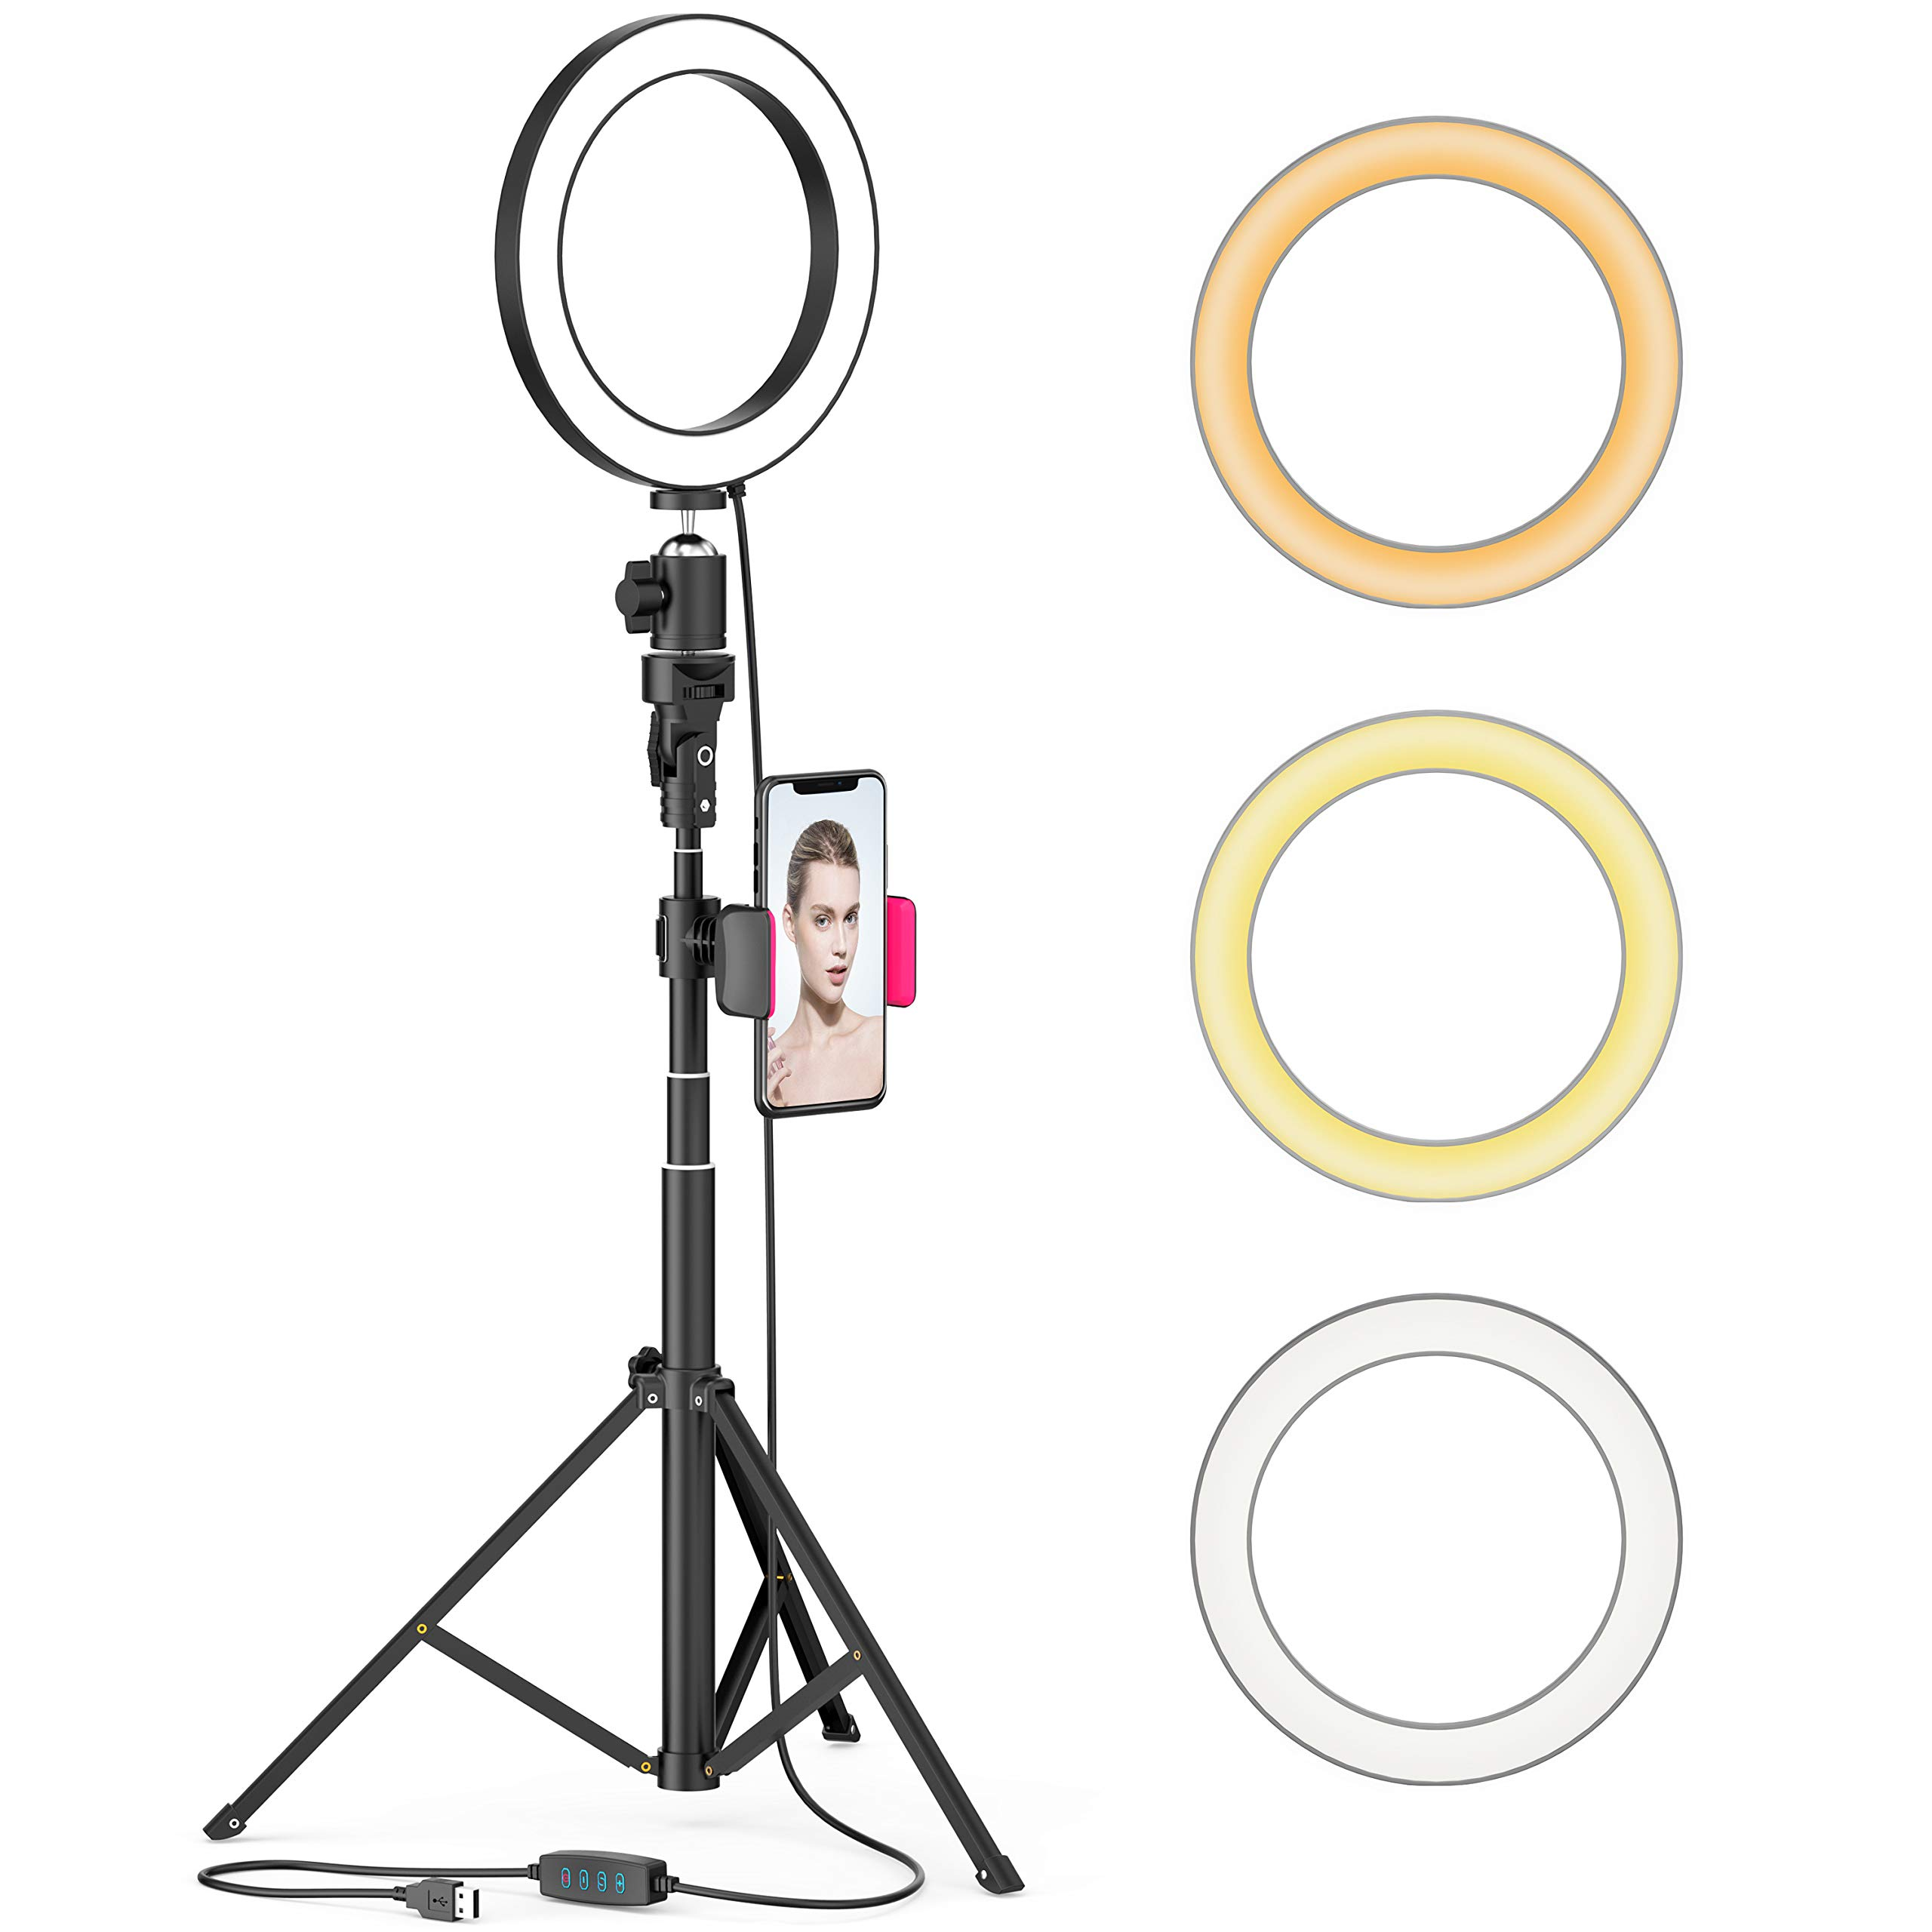 8'' LED Selfie Ring Light for Live Stream/Makeup/YouTube Video, Dimmable Beauty Ringlight with Tripod Stand & Cell Phone Holder for iPhone Android Phone, Color Temperature 3000K-5000K, 80 Bulbs, Remote